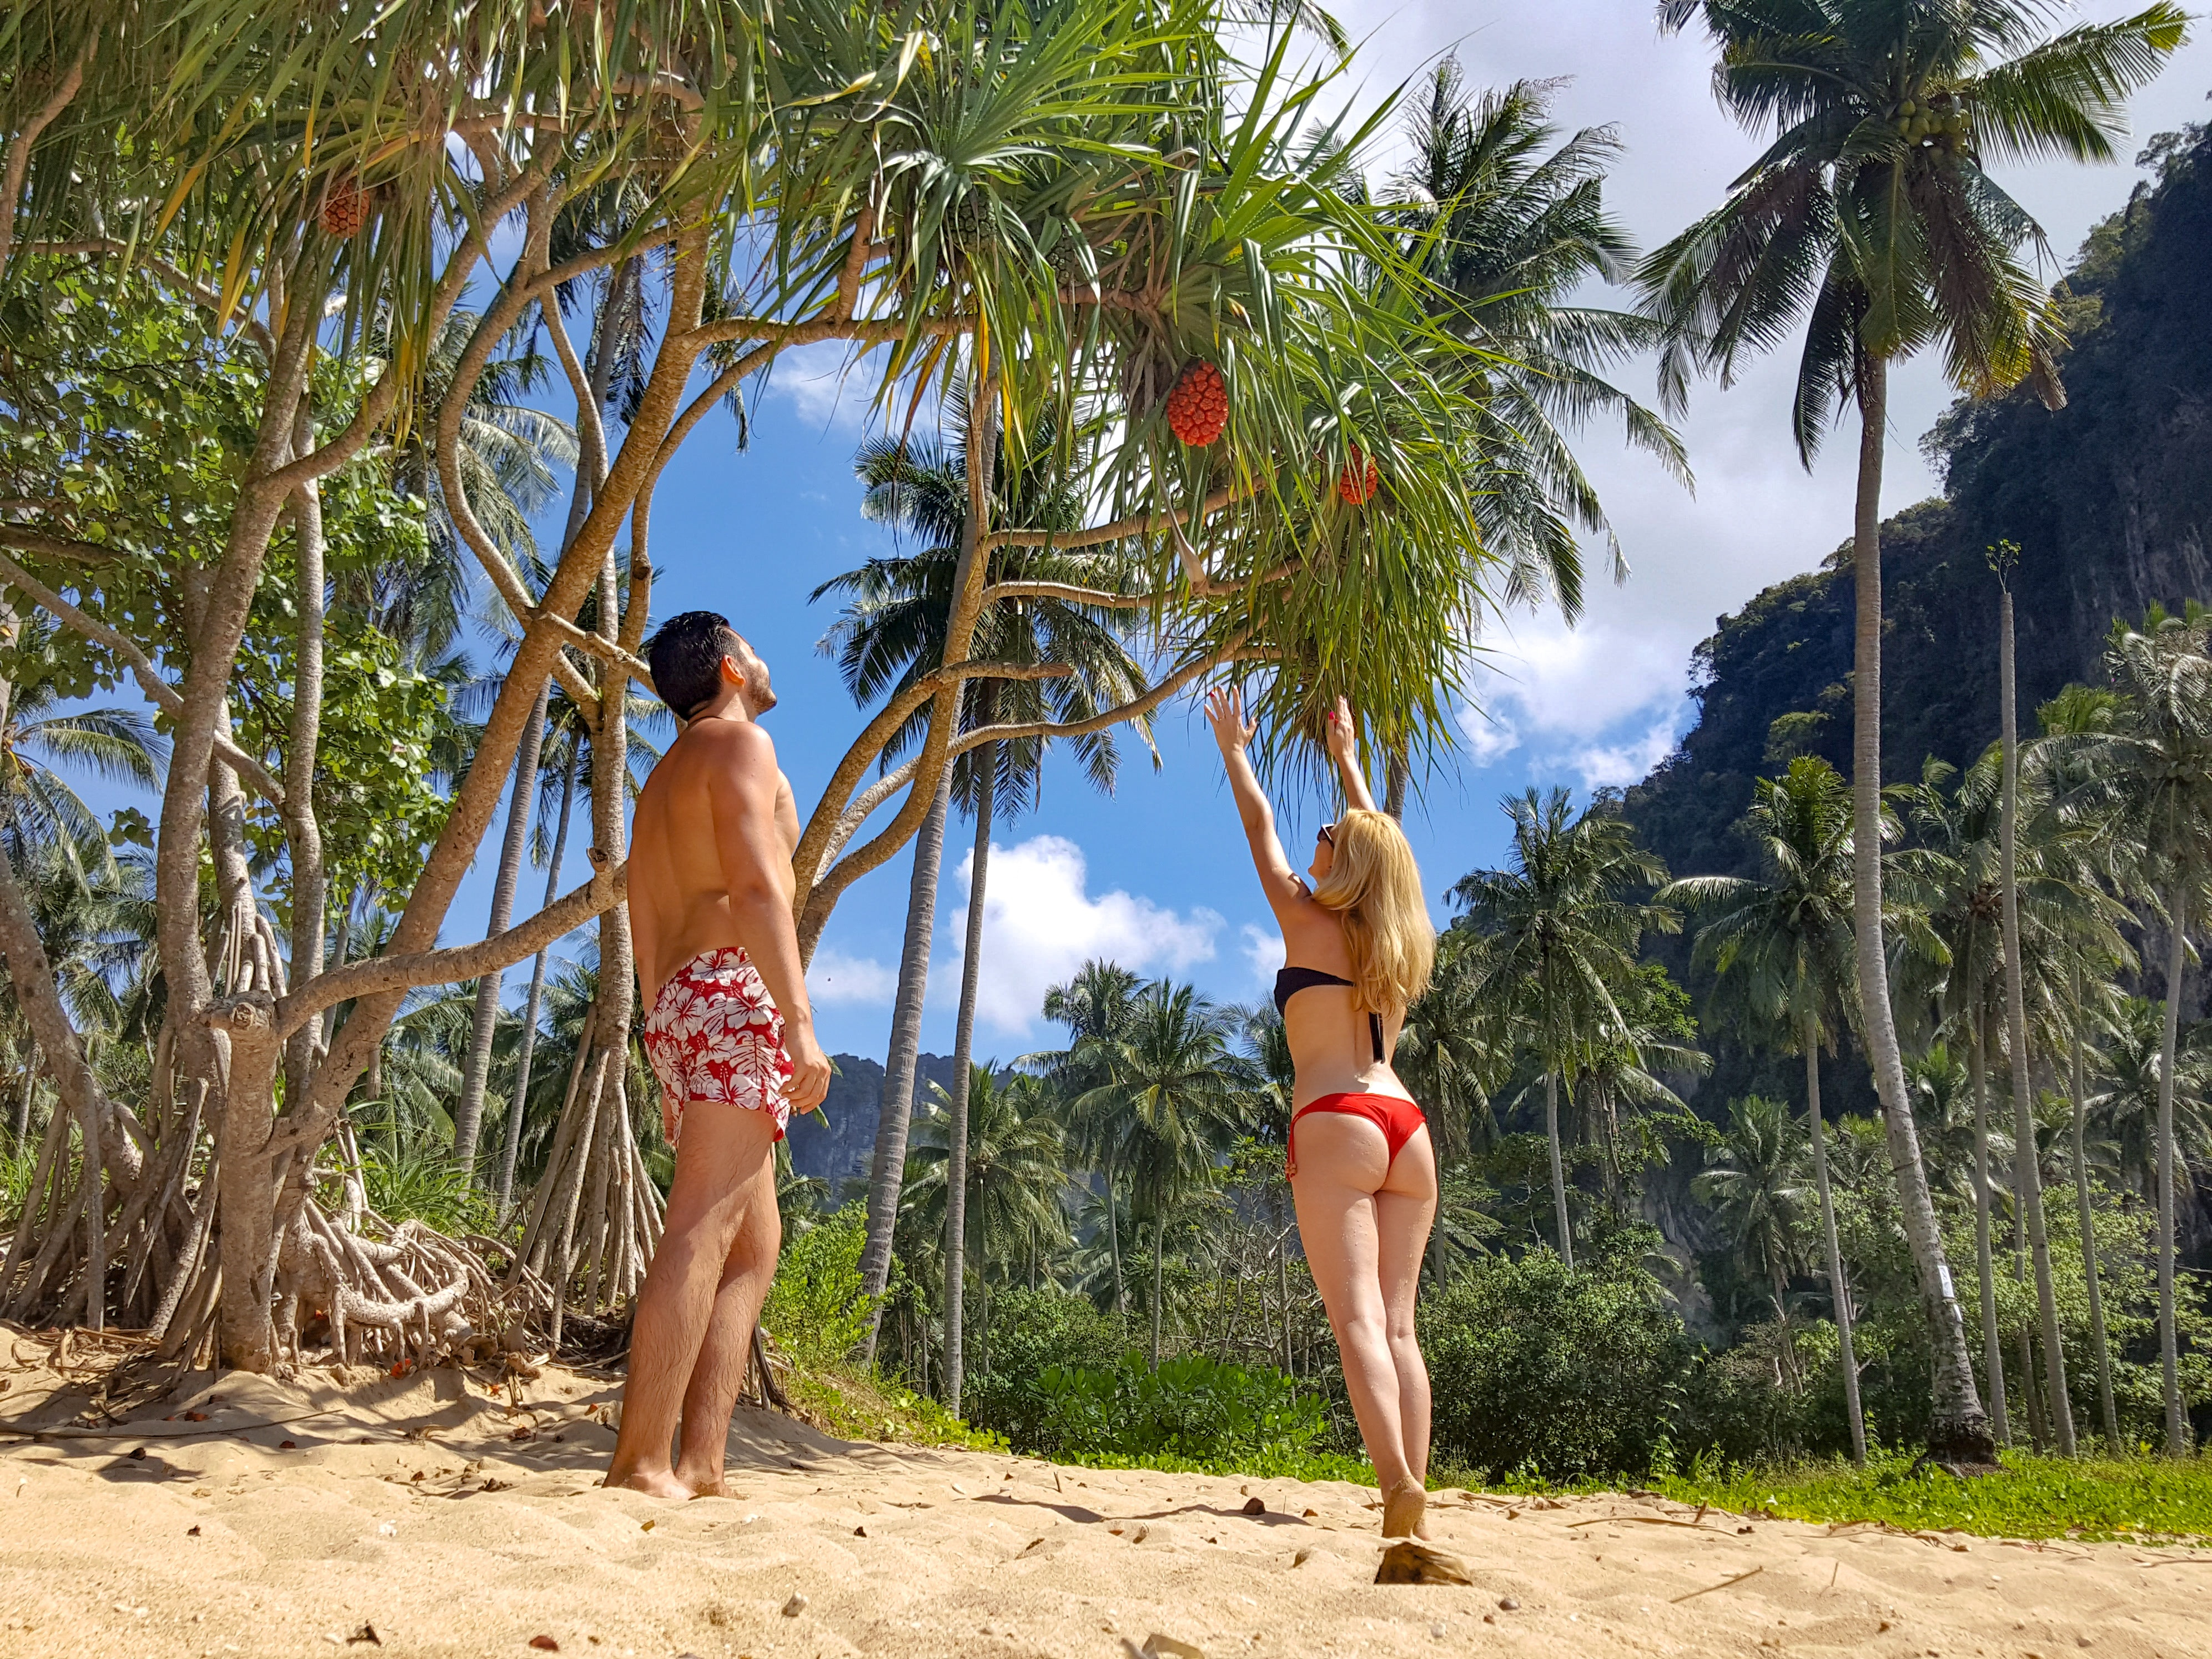 Woman Wearing Black Bikini Top and Red Bottom Beside Man Wearing White and Red Floral Shorts, Bikini, Sand, Young, Woman, HQ Photo